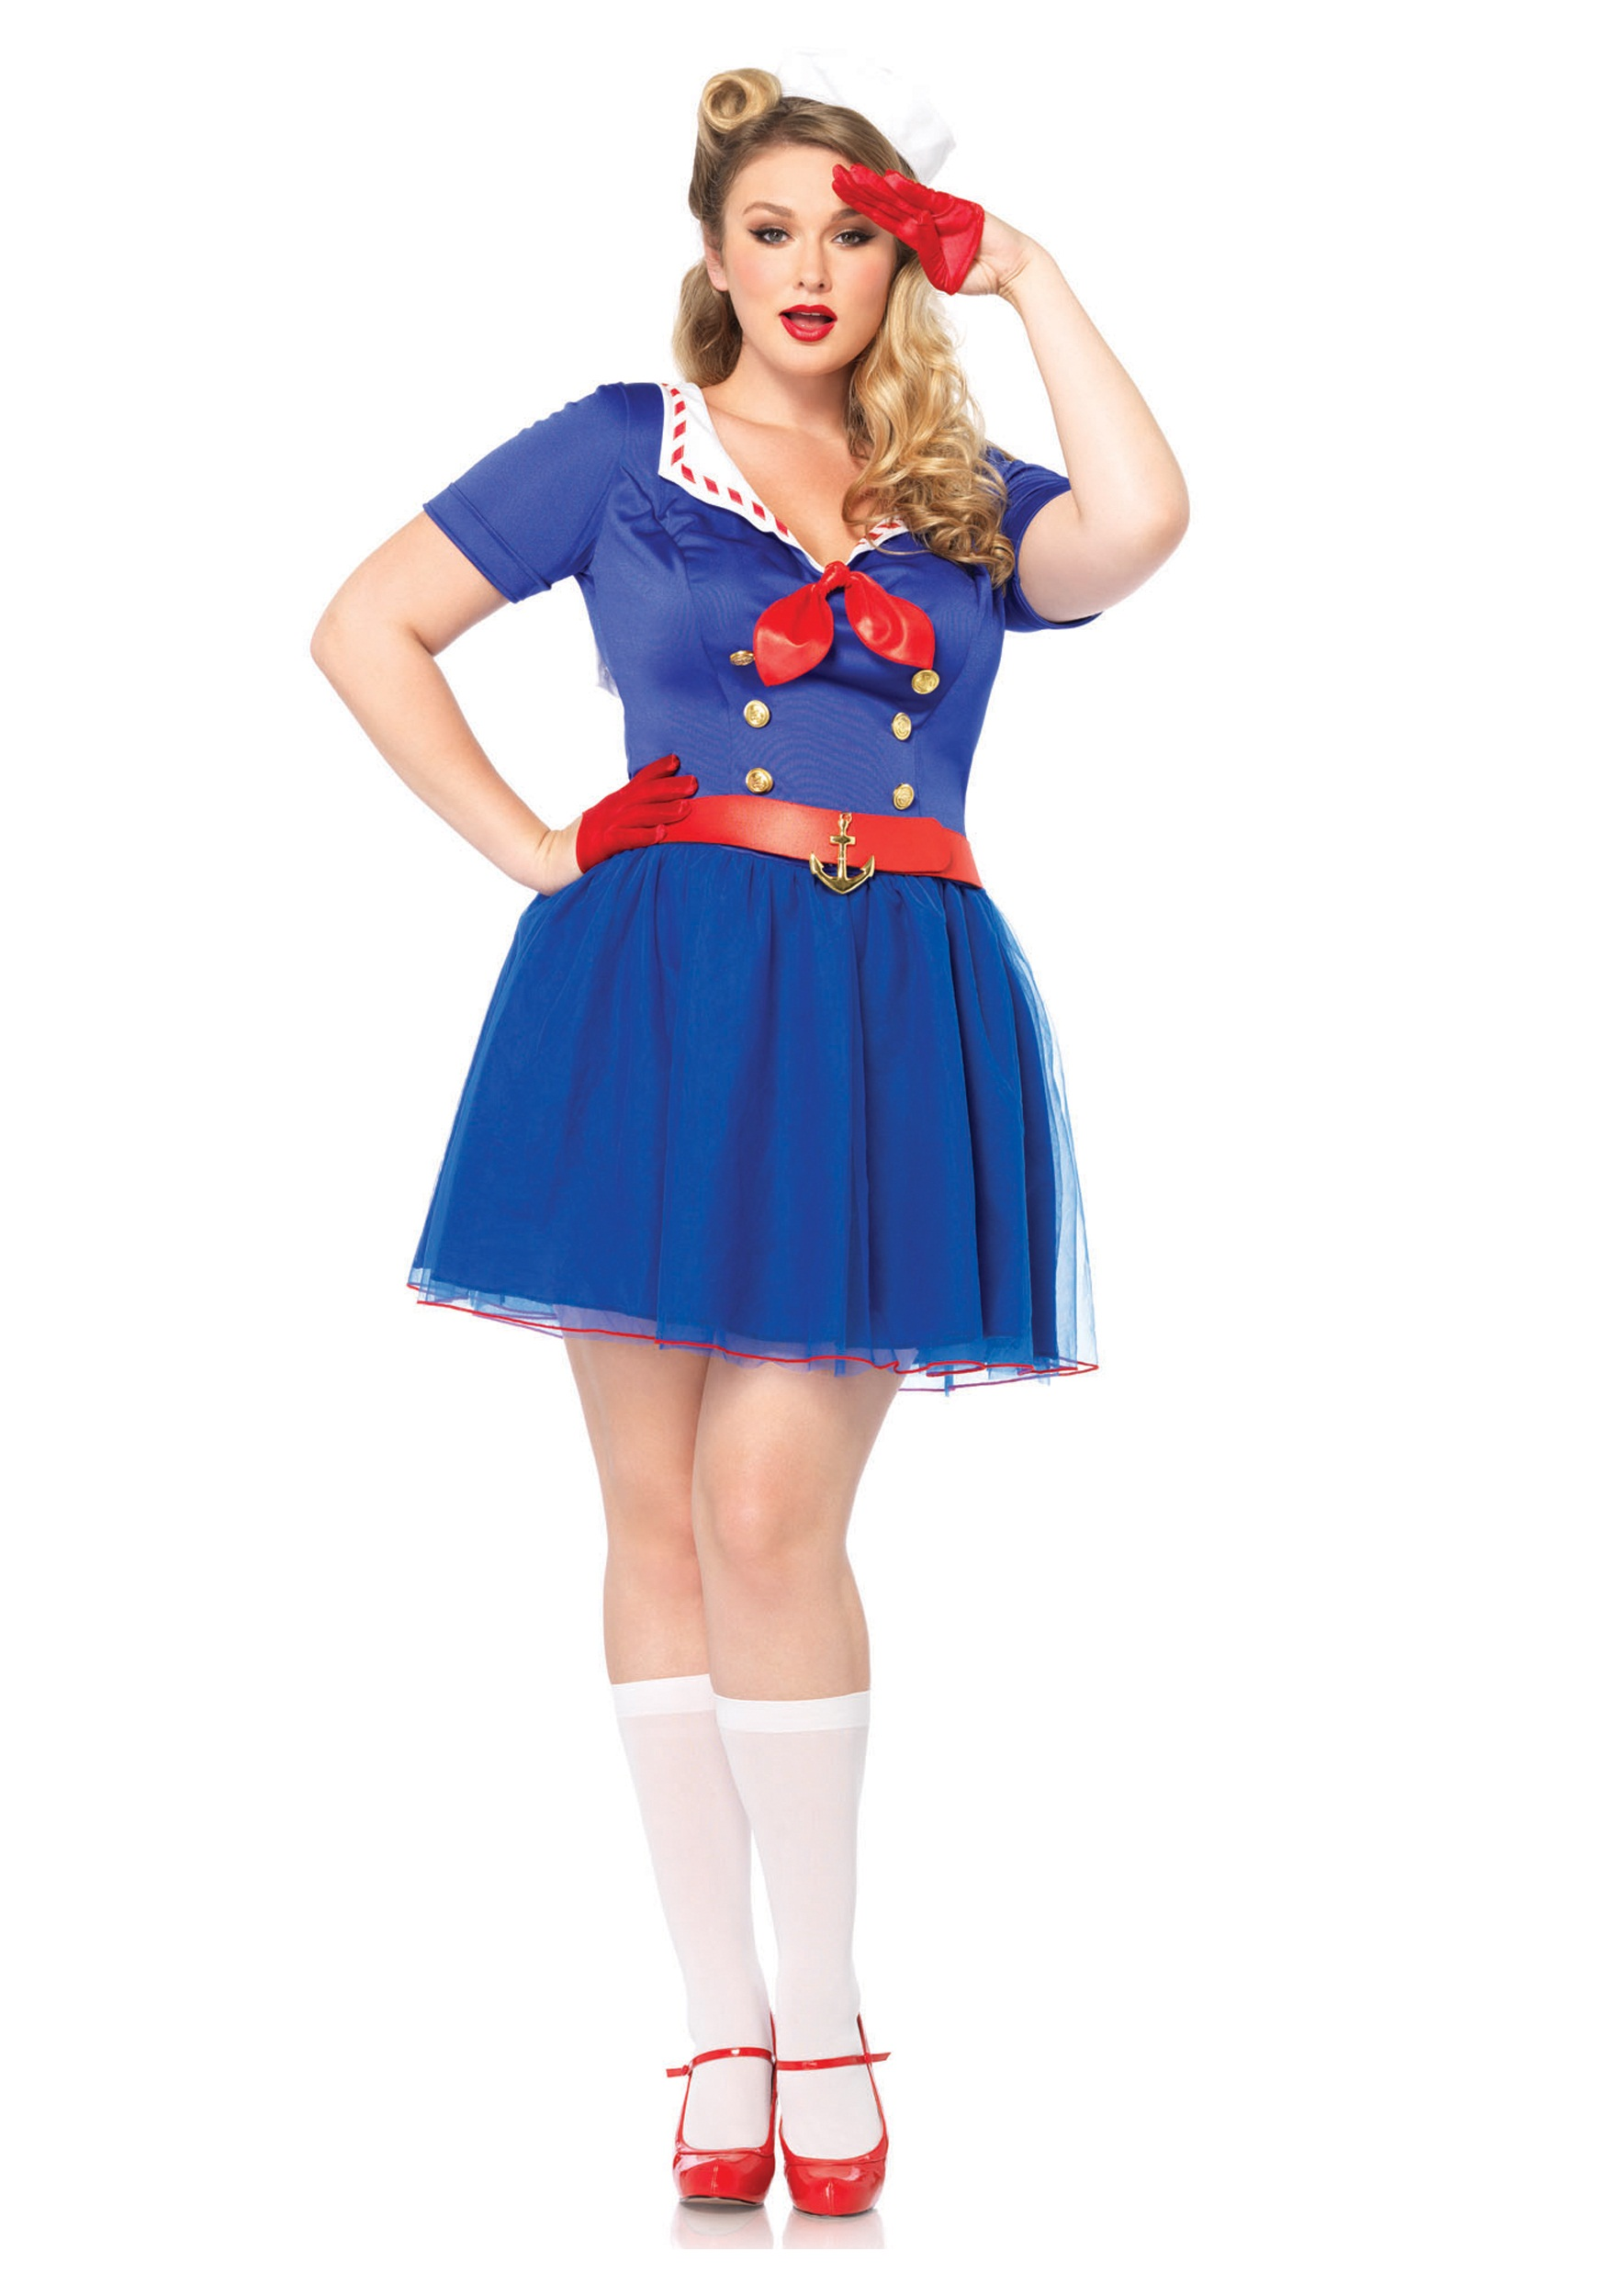 Find great deals on eBay for plus size sailor costume. Shop with confidence.